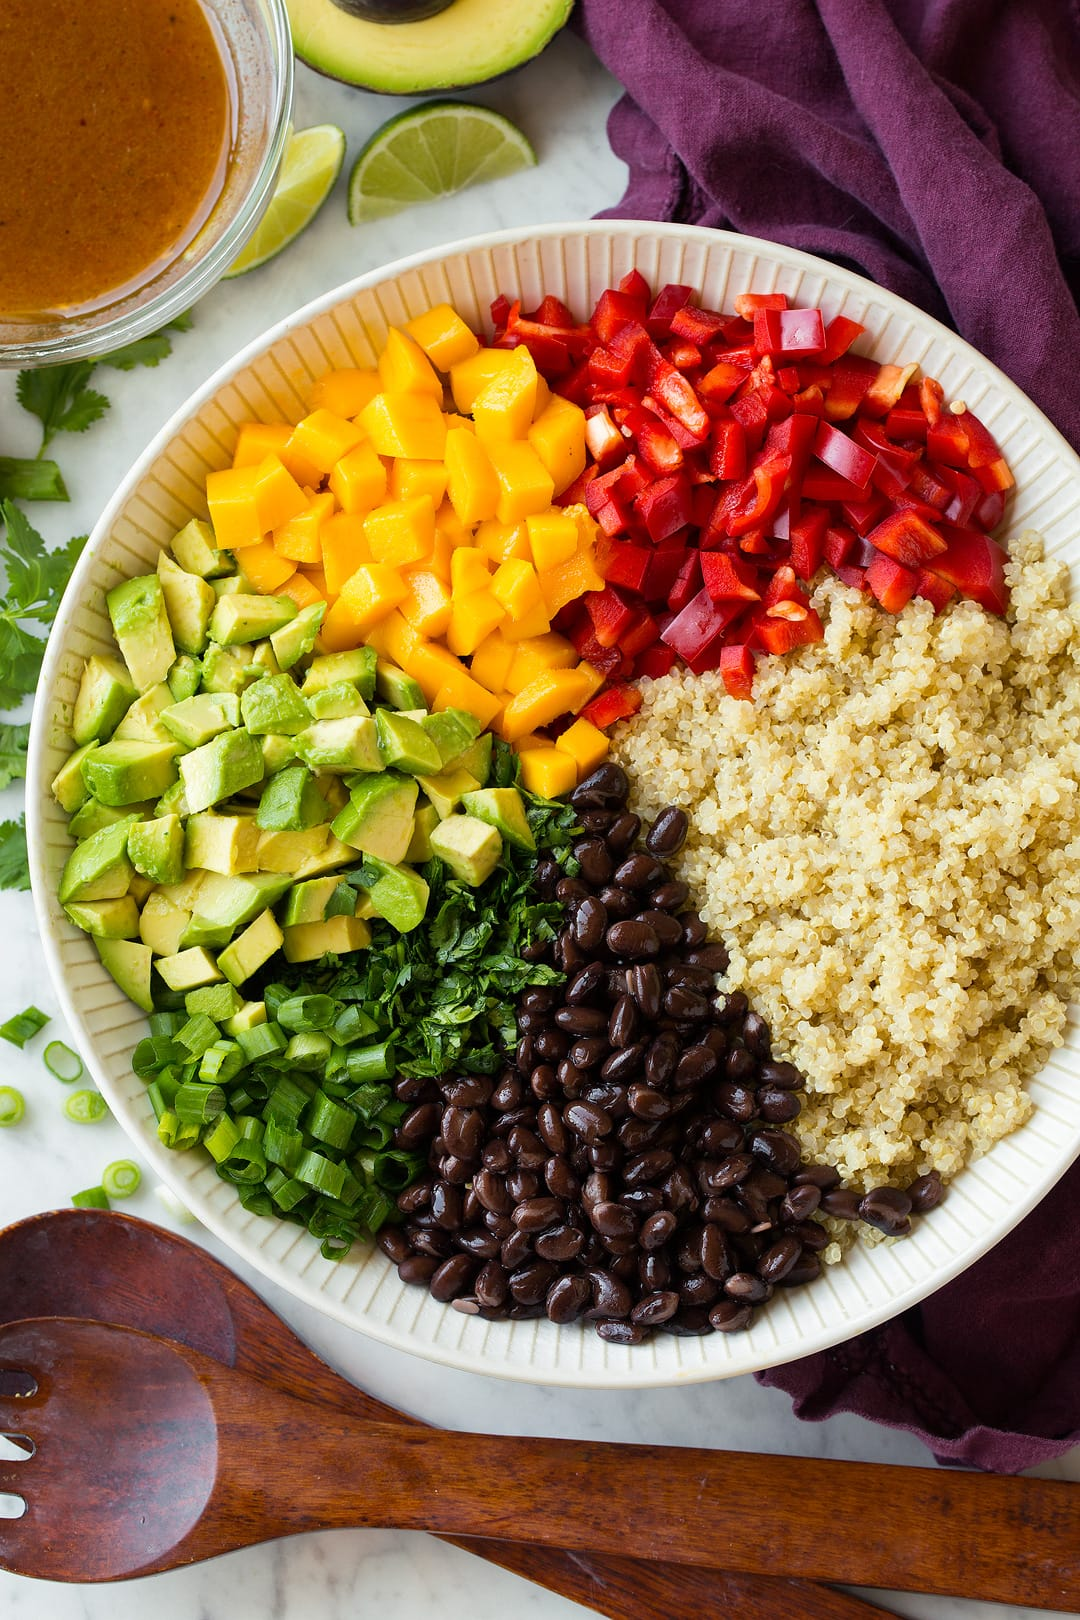 Quinoa black bean salad ingredients shown in individual portions before tossing in a white salad bowl.